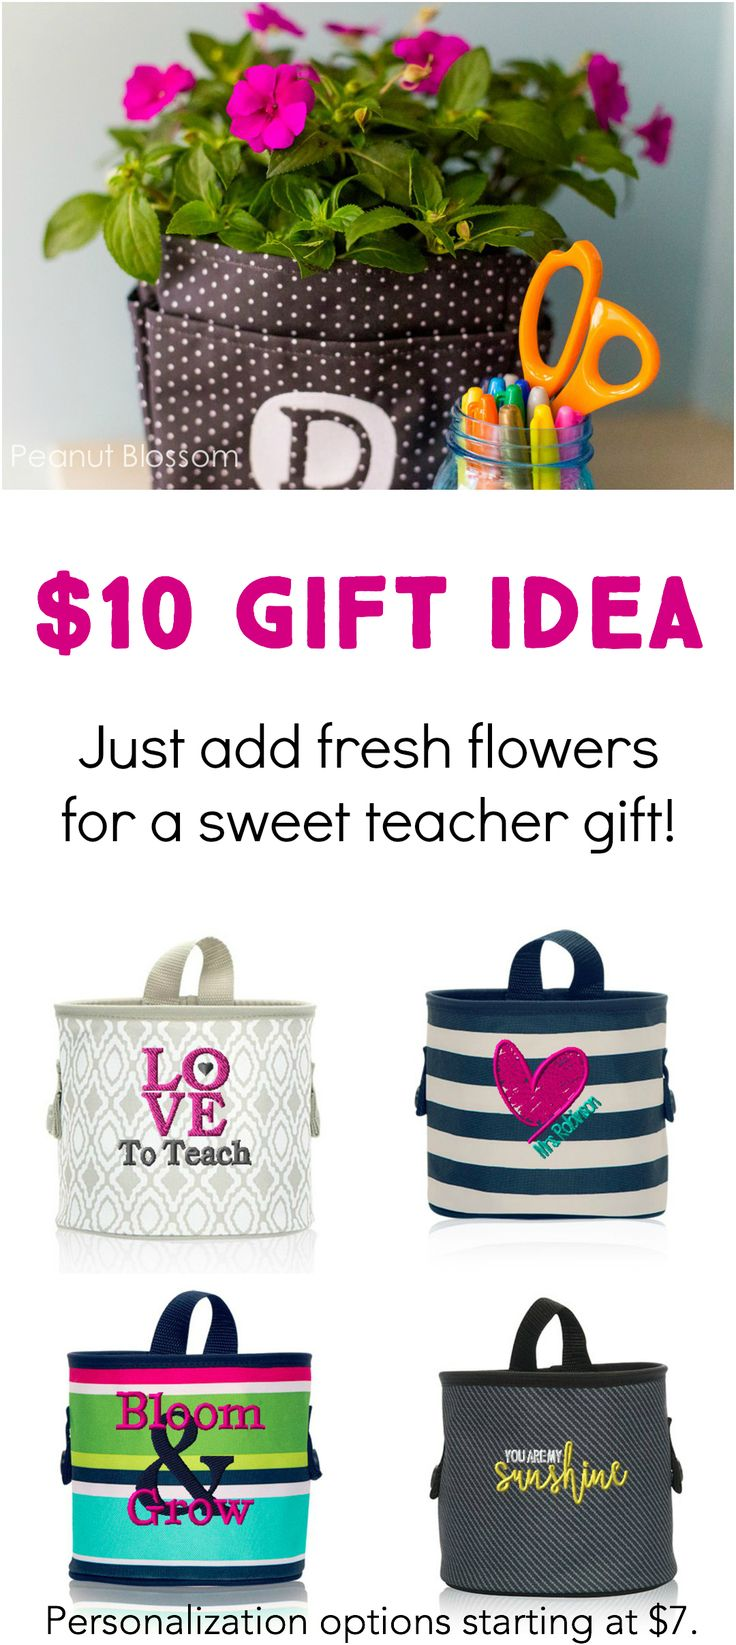 Thirty one november customer special 2014 - Thirty One Teacher Gift Idea